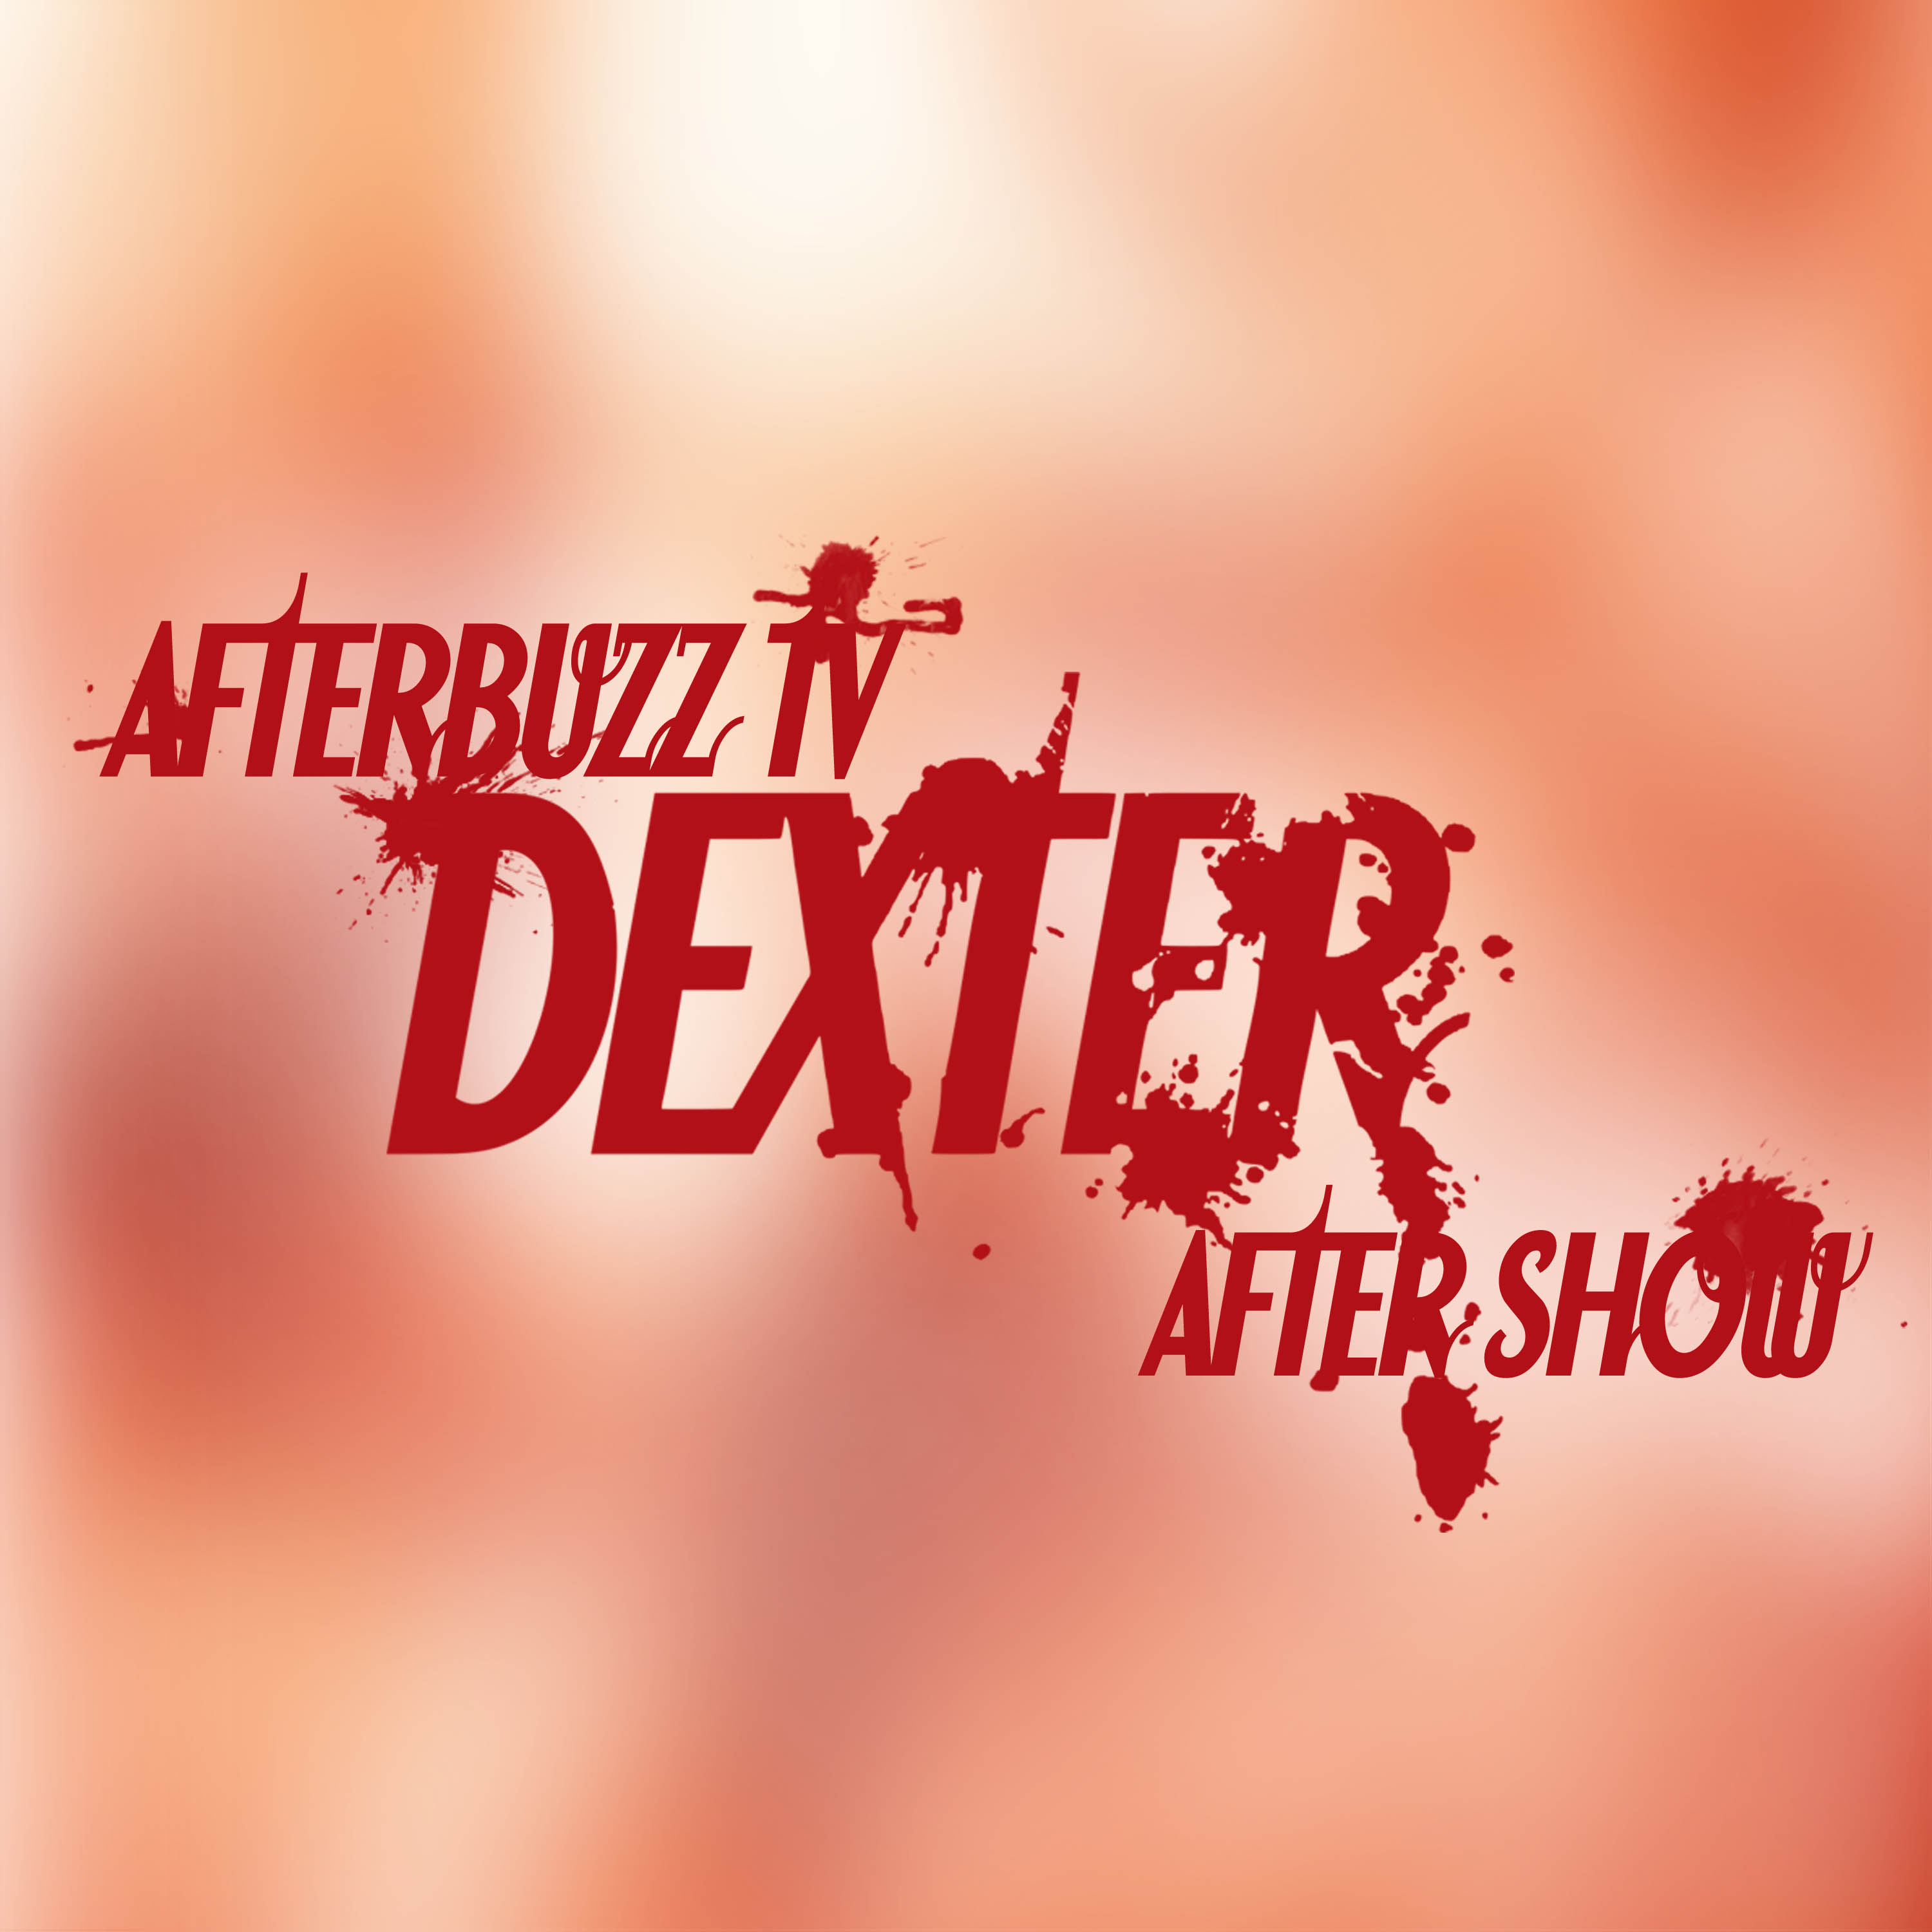 Dexter After Show